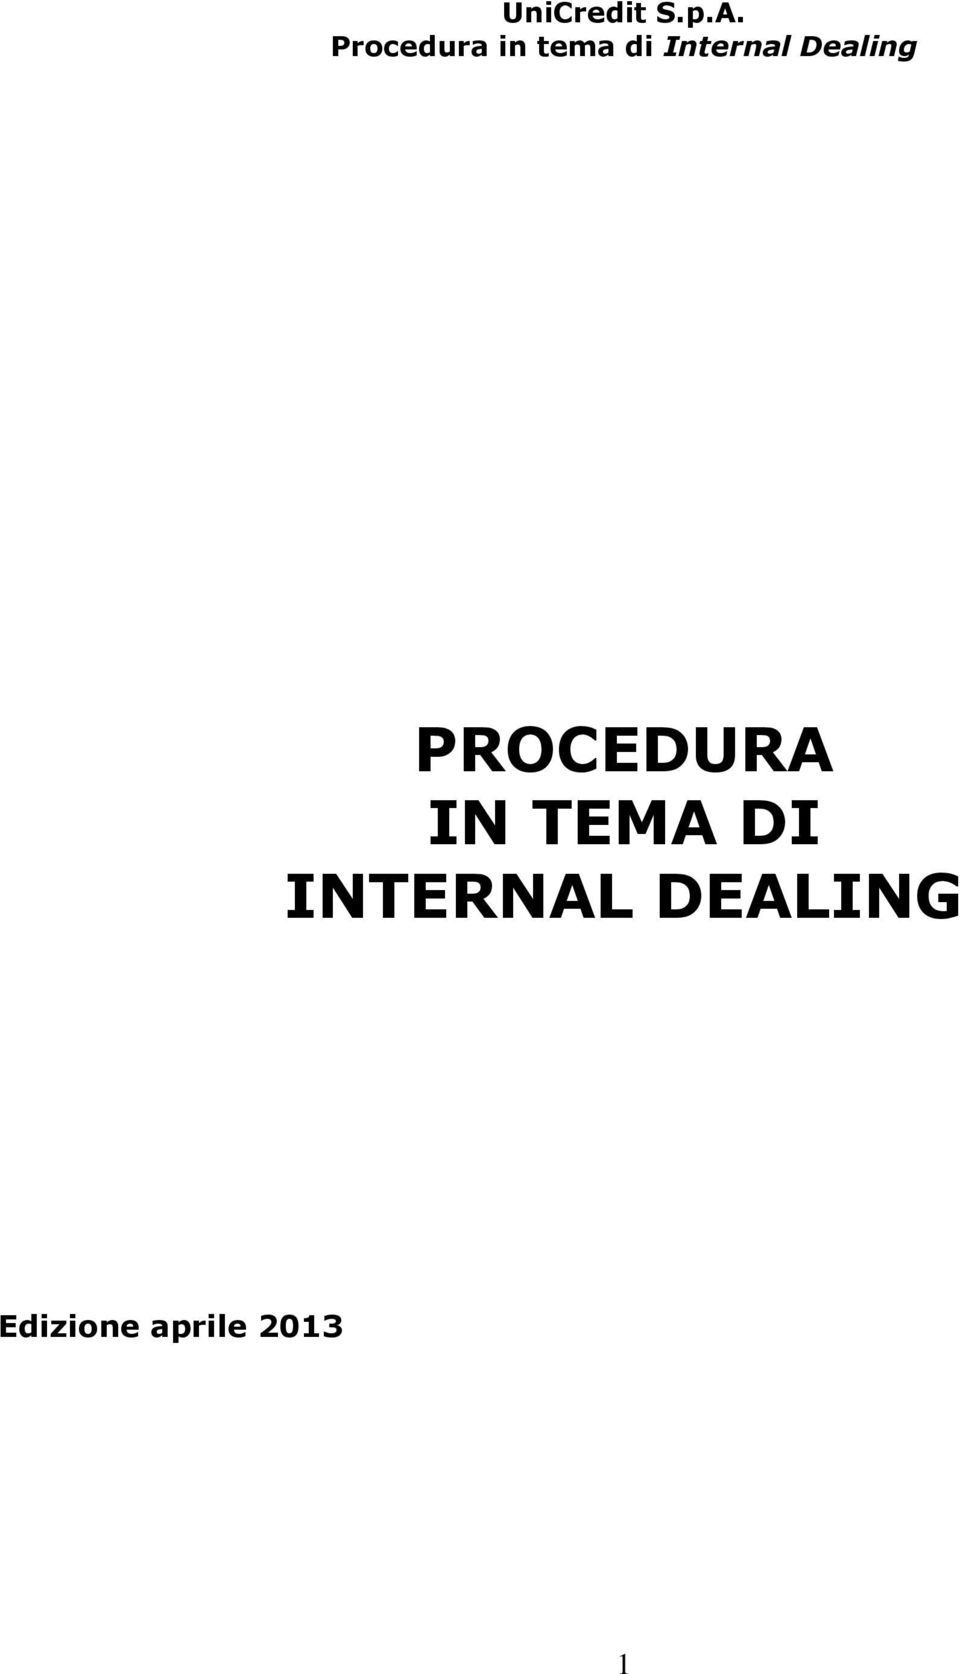 Internal Dealing PROCEDURA